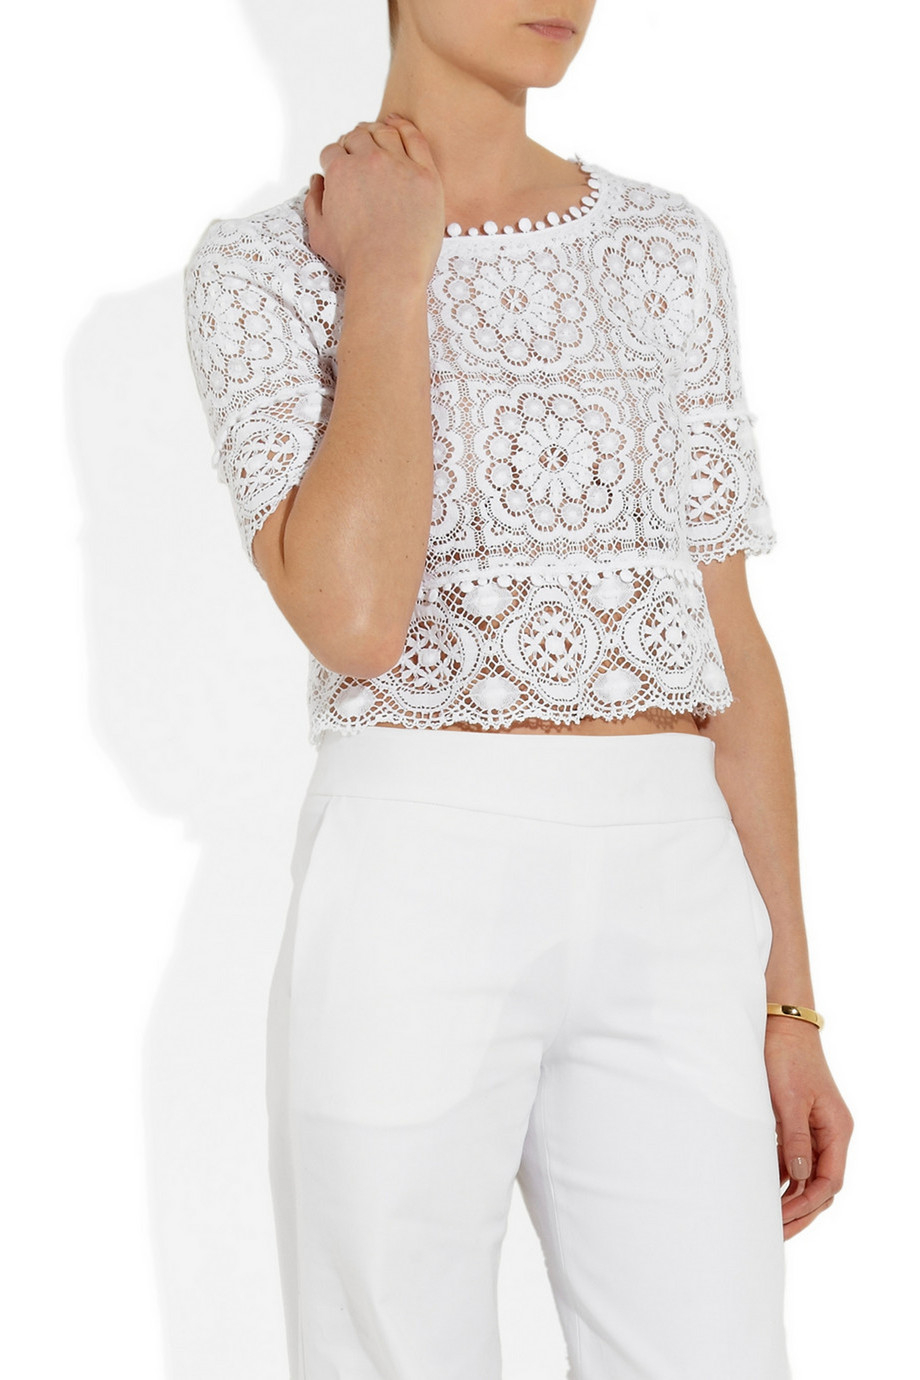 Cheap Price From China Oscar de la Renta broderie anglaise top Cheap New Buy Cheap Great Deals For Sale Wholesale Price PCFZ3V